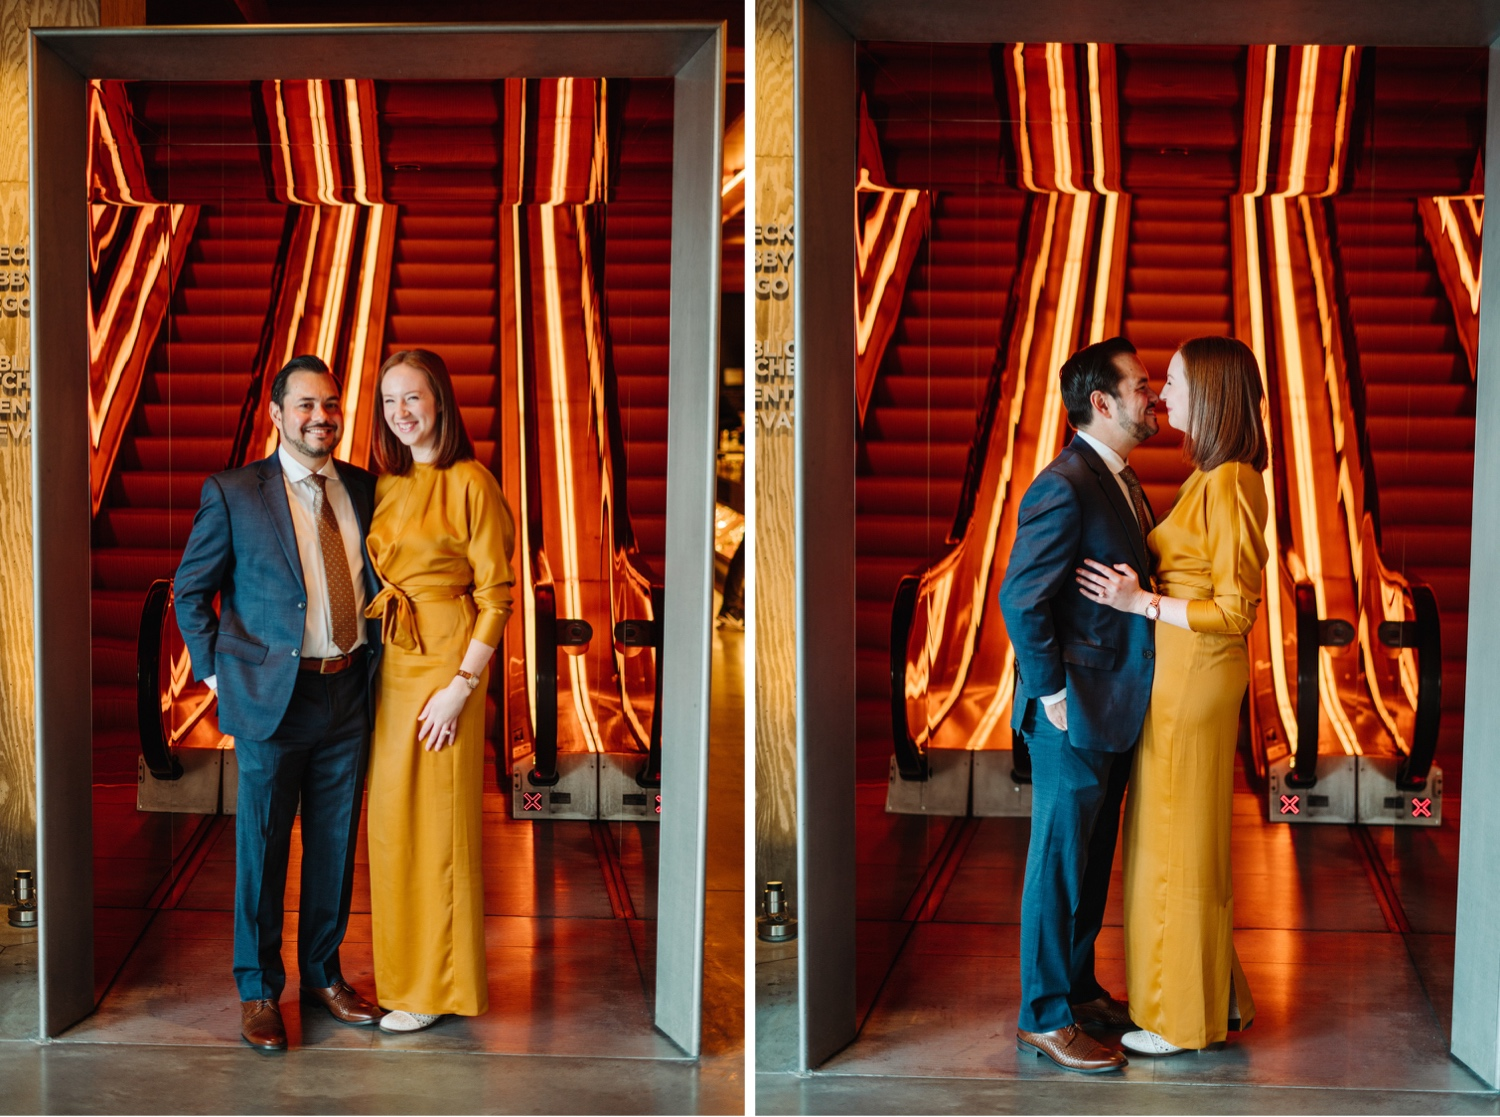 PUBLIC Hotel Engagement Session, NYC Public Hotel Engagement Photos, NYC PUBLIC Hotel Engagement session